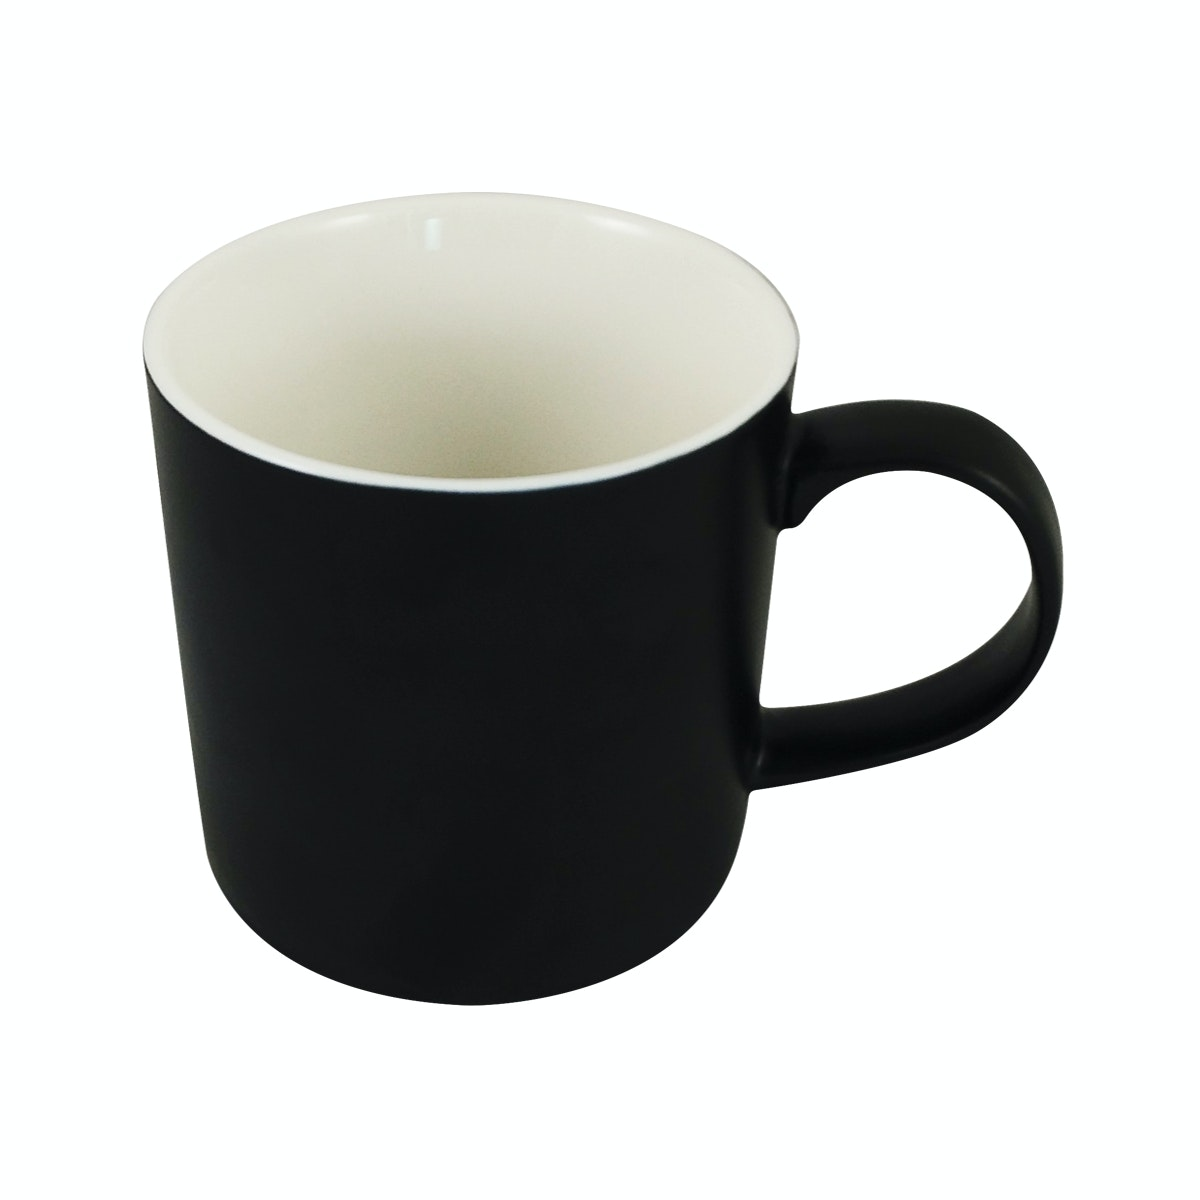 Weston Office Mug01 12pcs/set